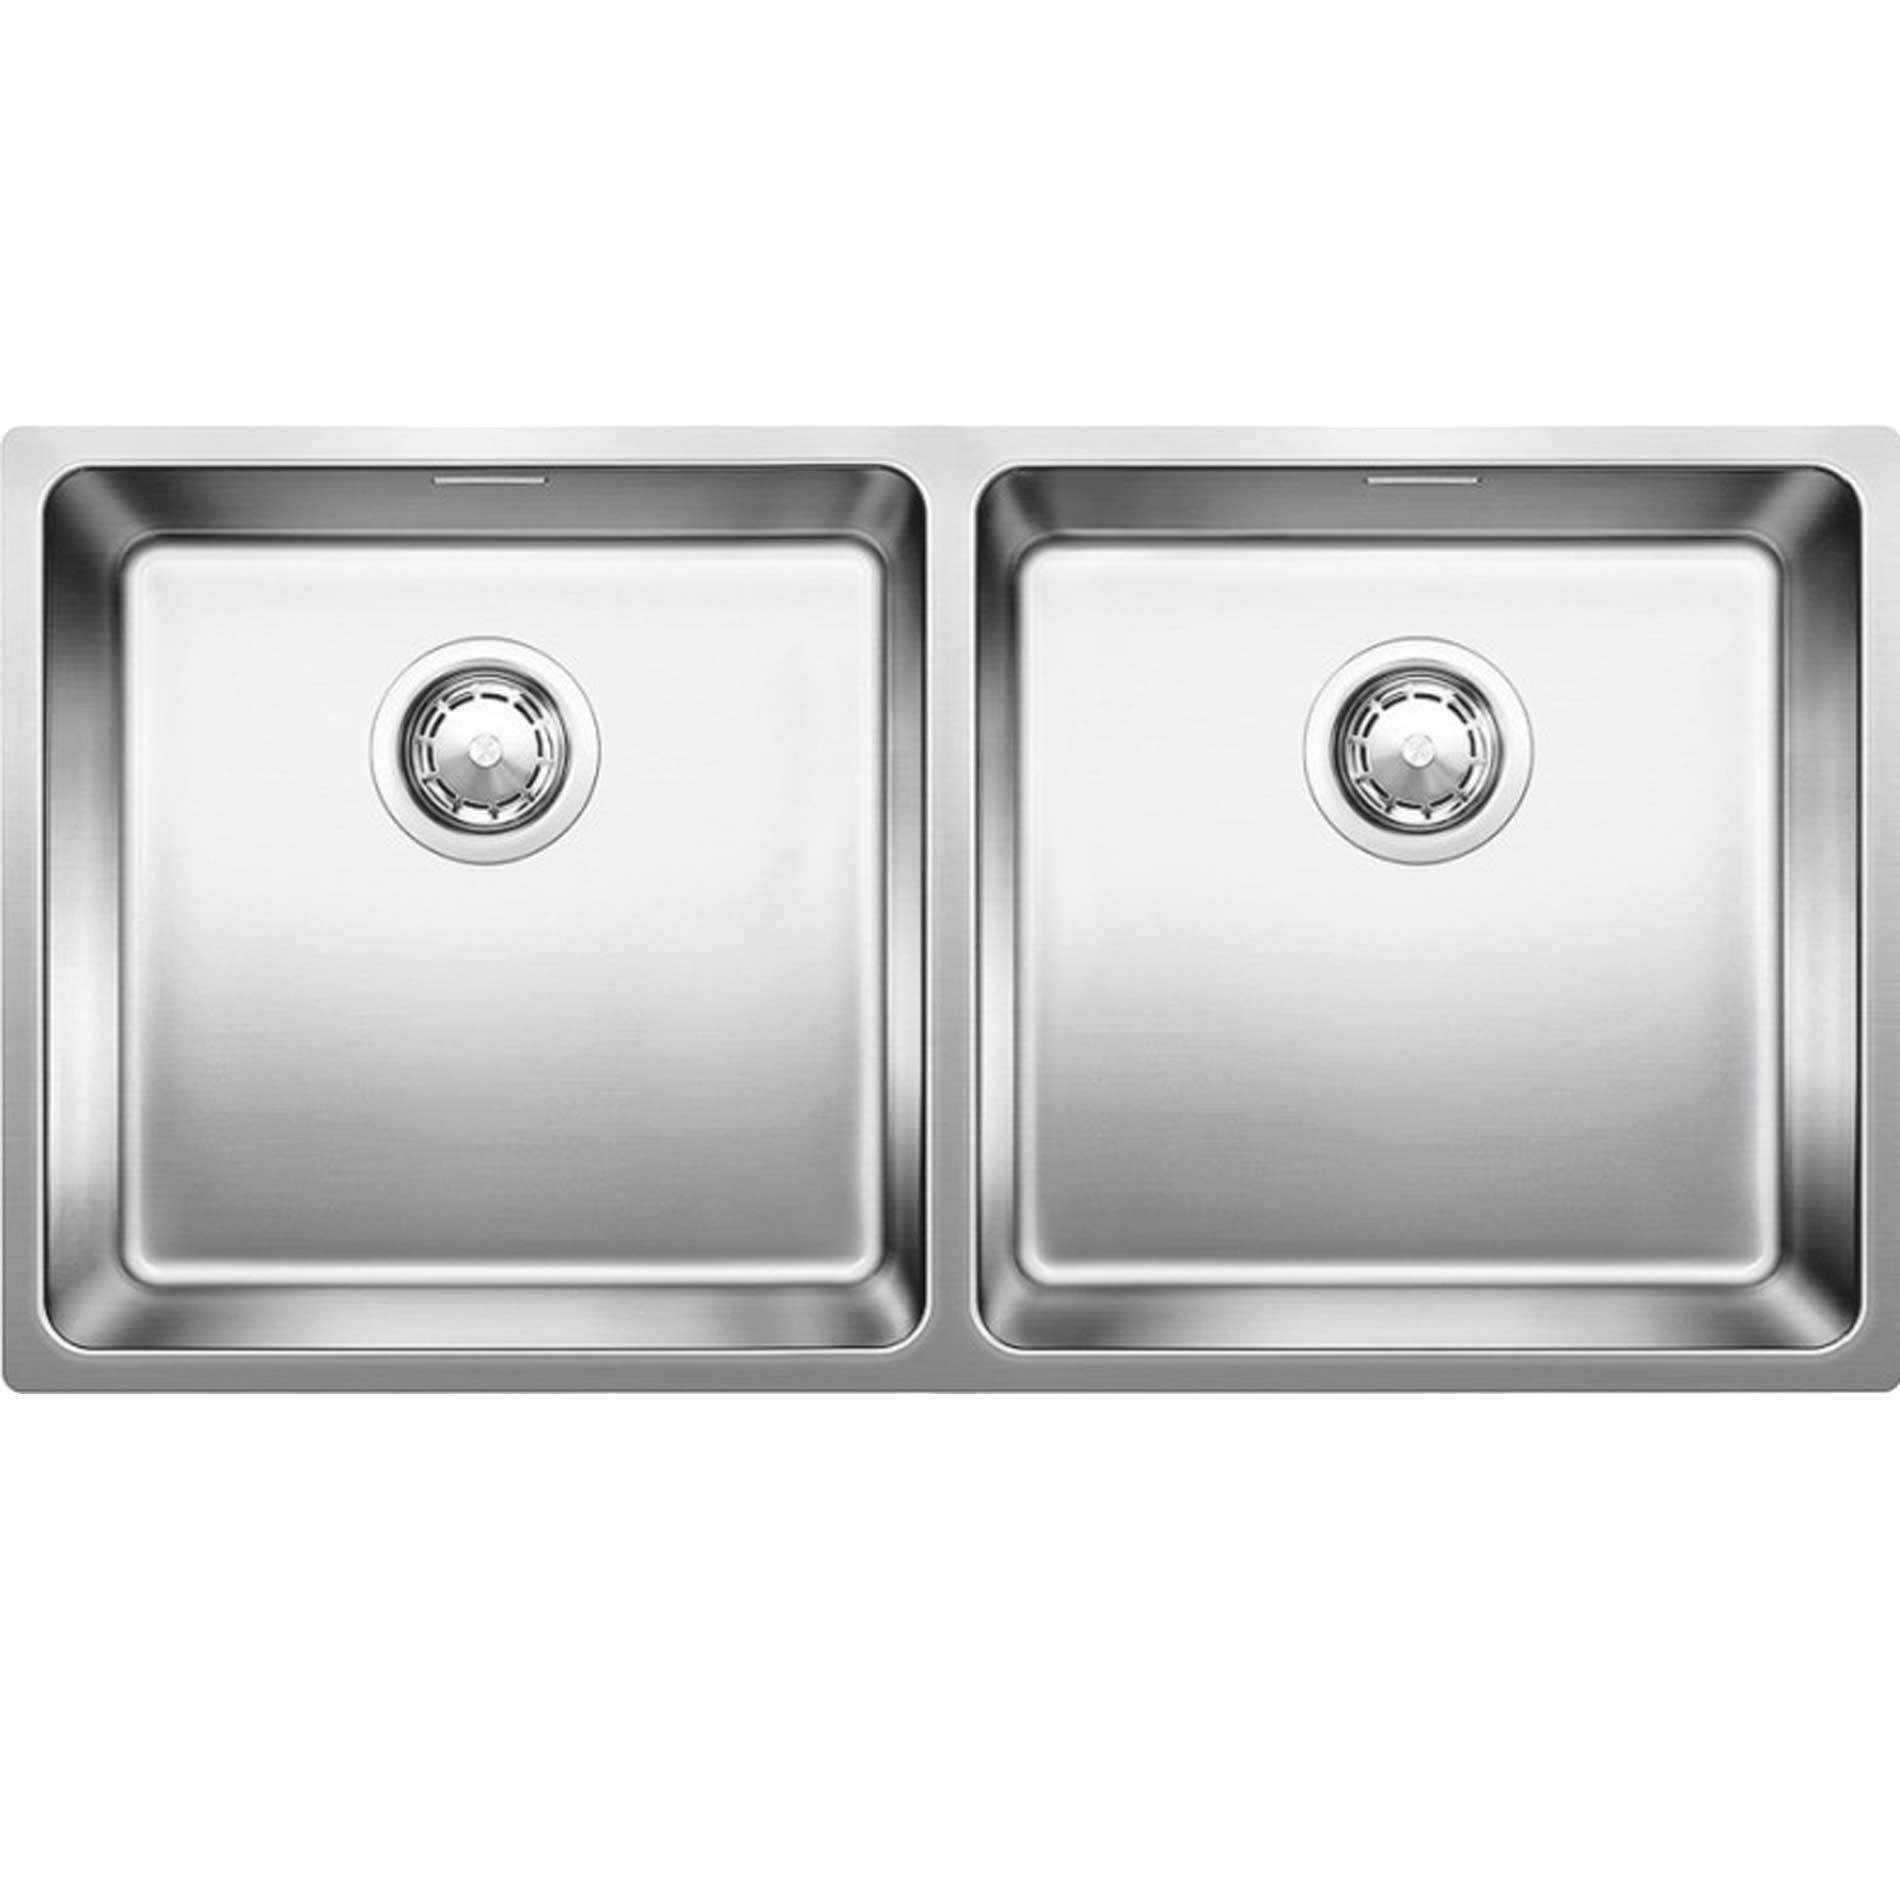 Kitchen Sinks & Taps - Blanco: Andano 400/400-IF Stainless Steel Sink